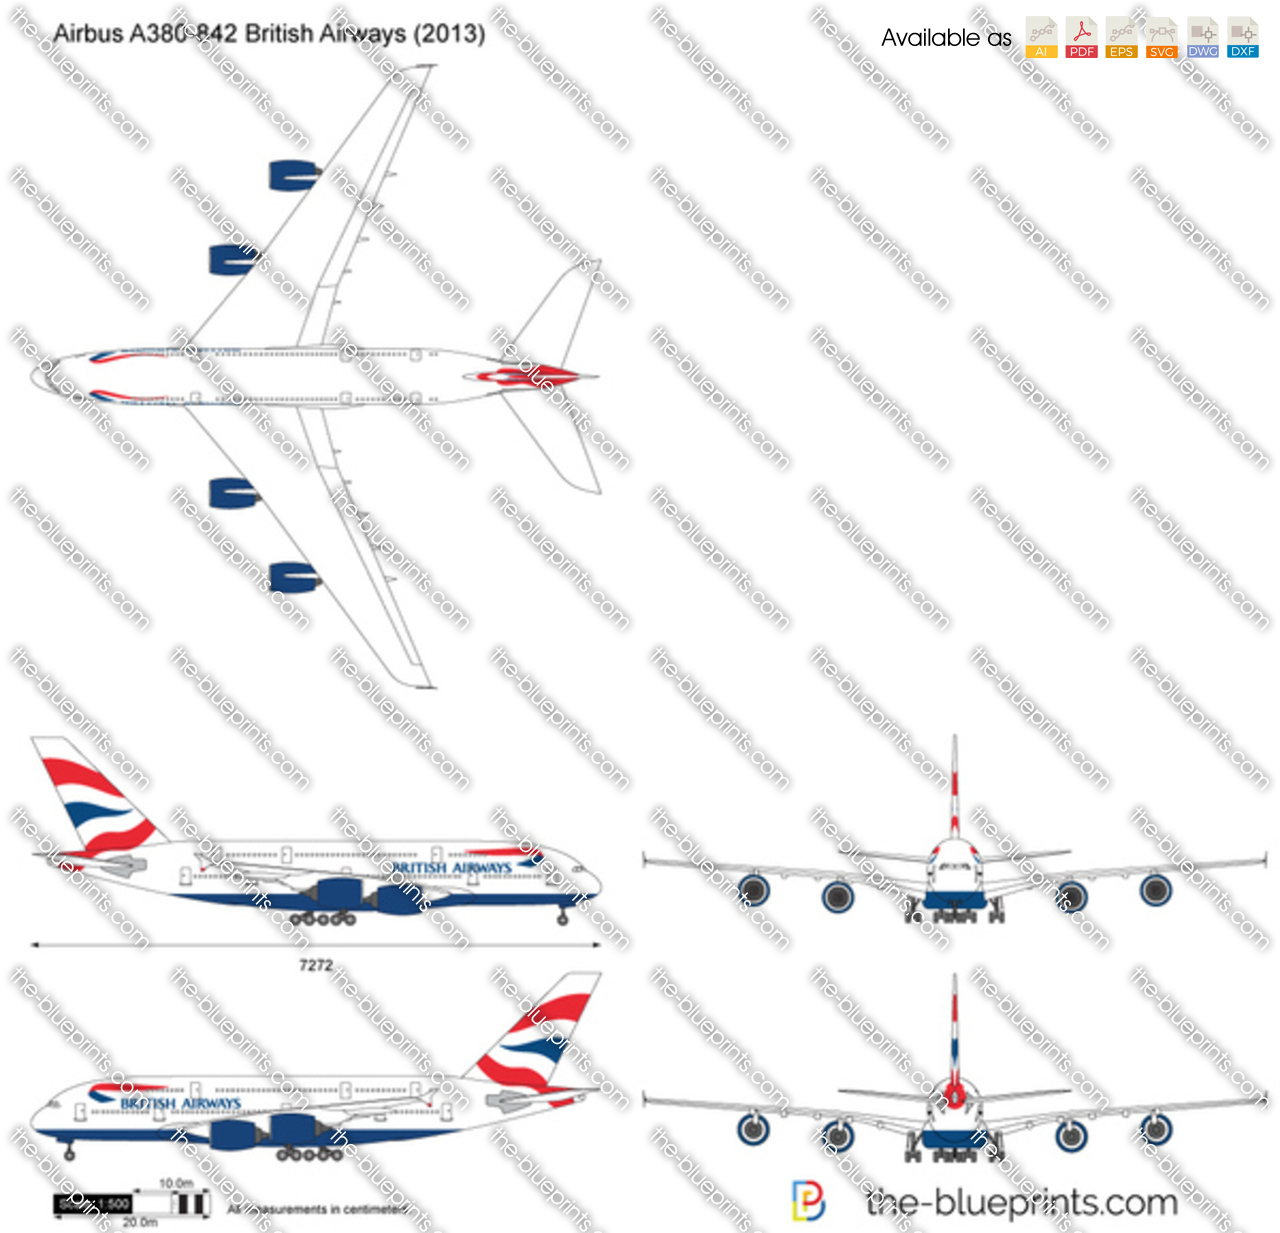 2016 Airbus A380-842 British Airways